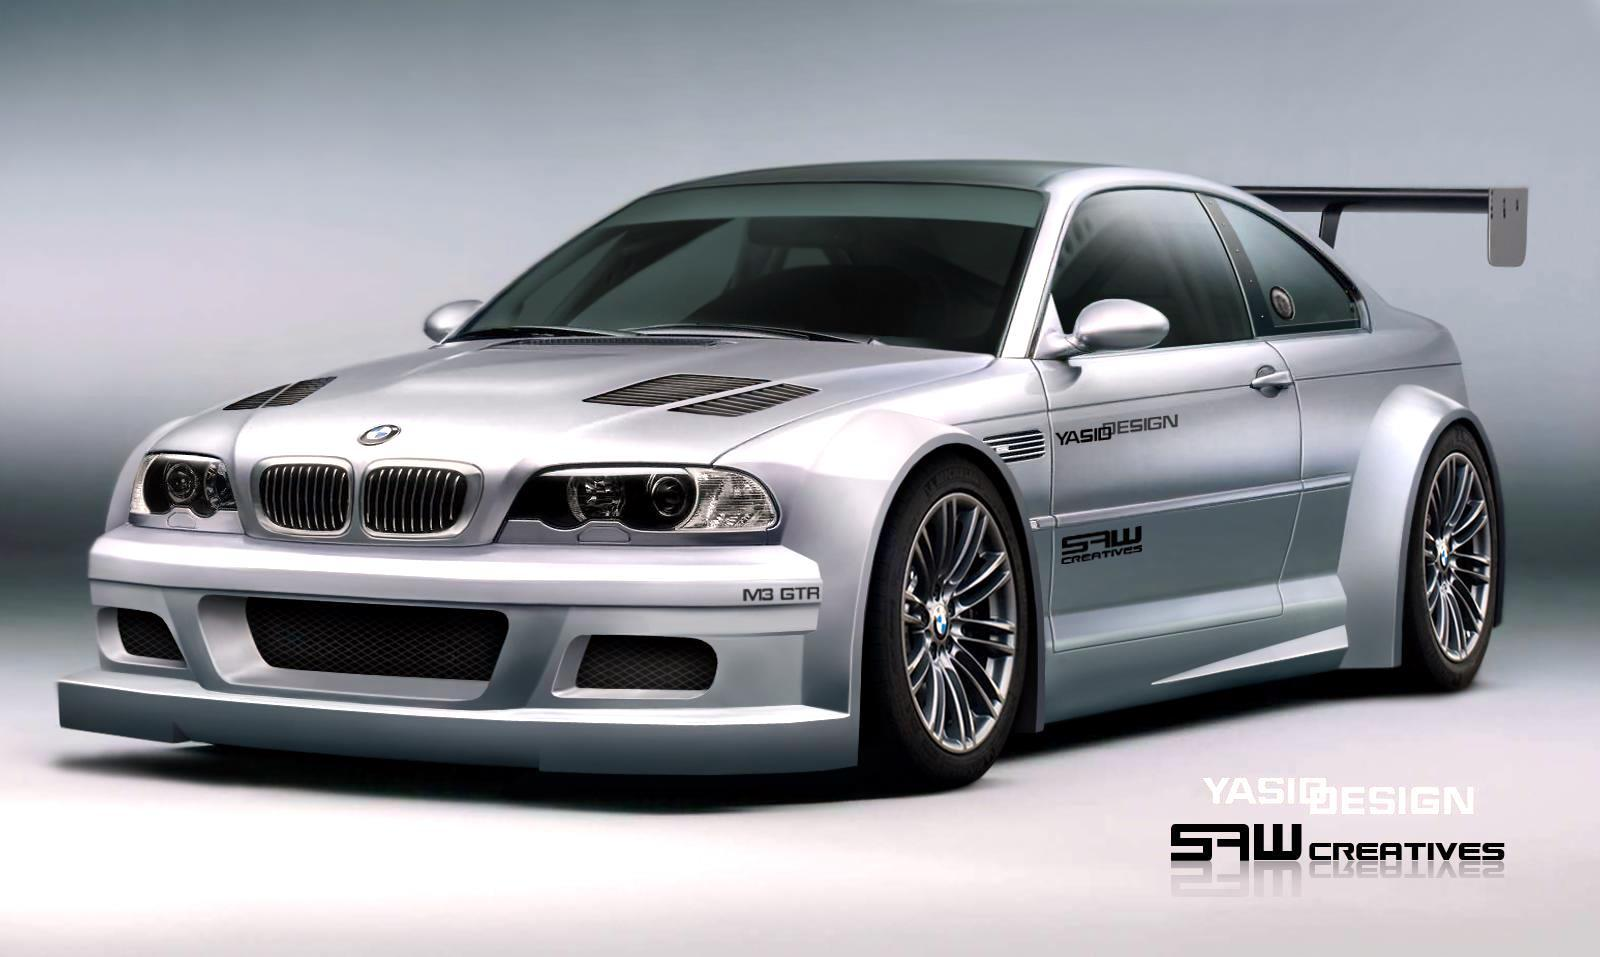 BMW M3 GTR by Yasid Design Wallpapers For PC Desktop